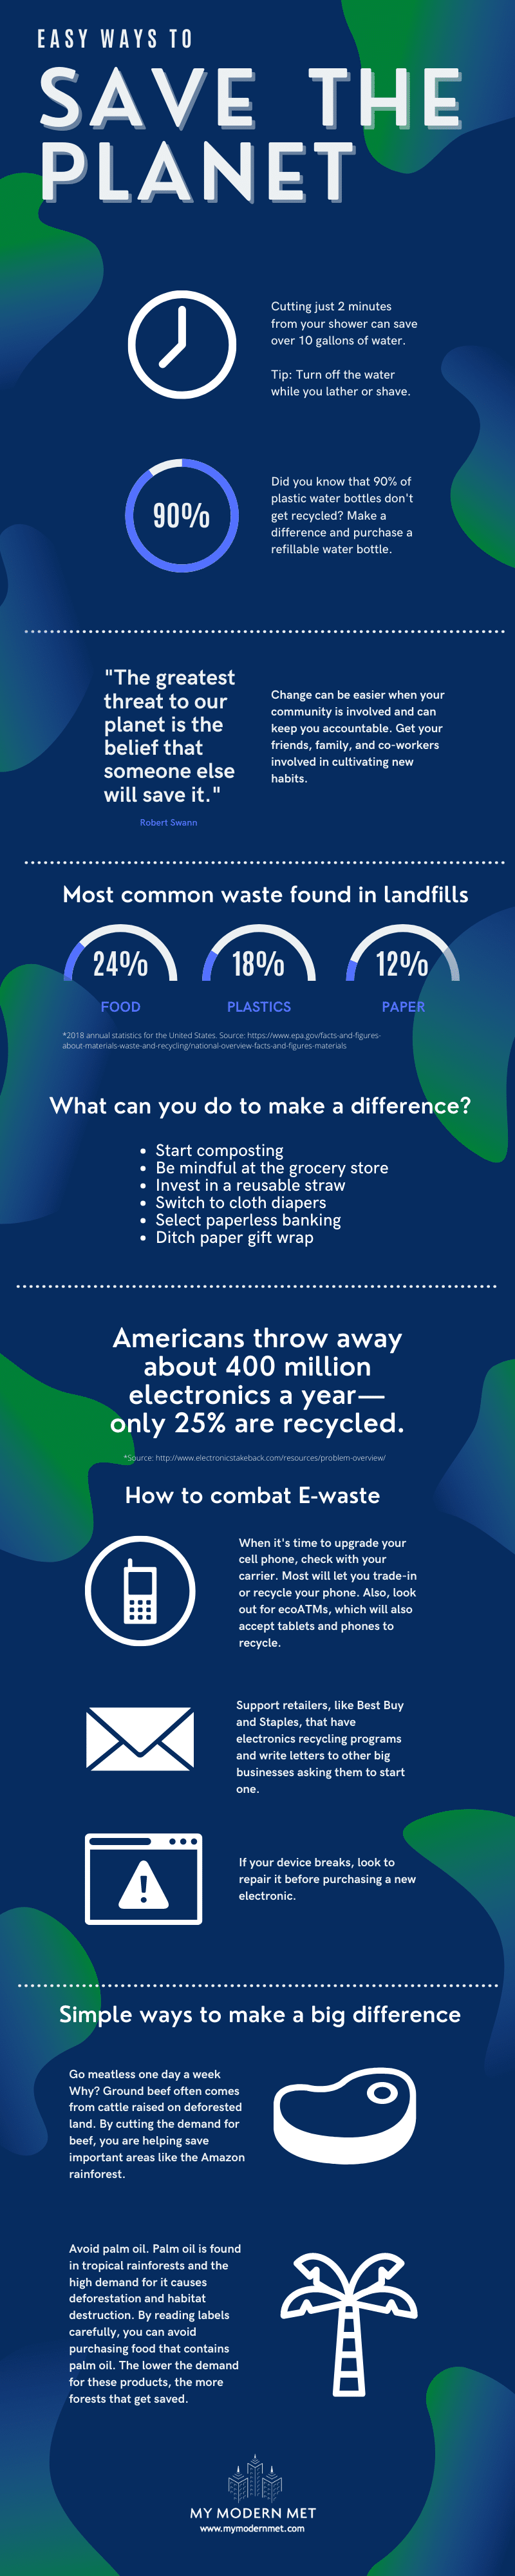 Ways to Save the Planet Infographic